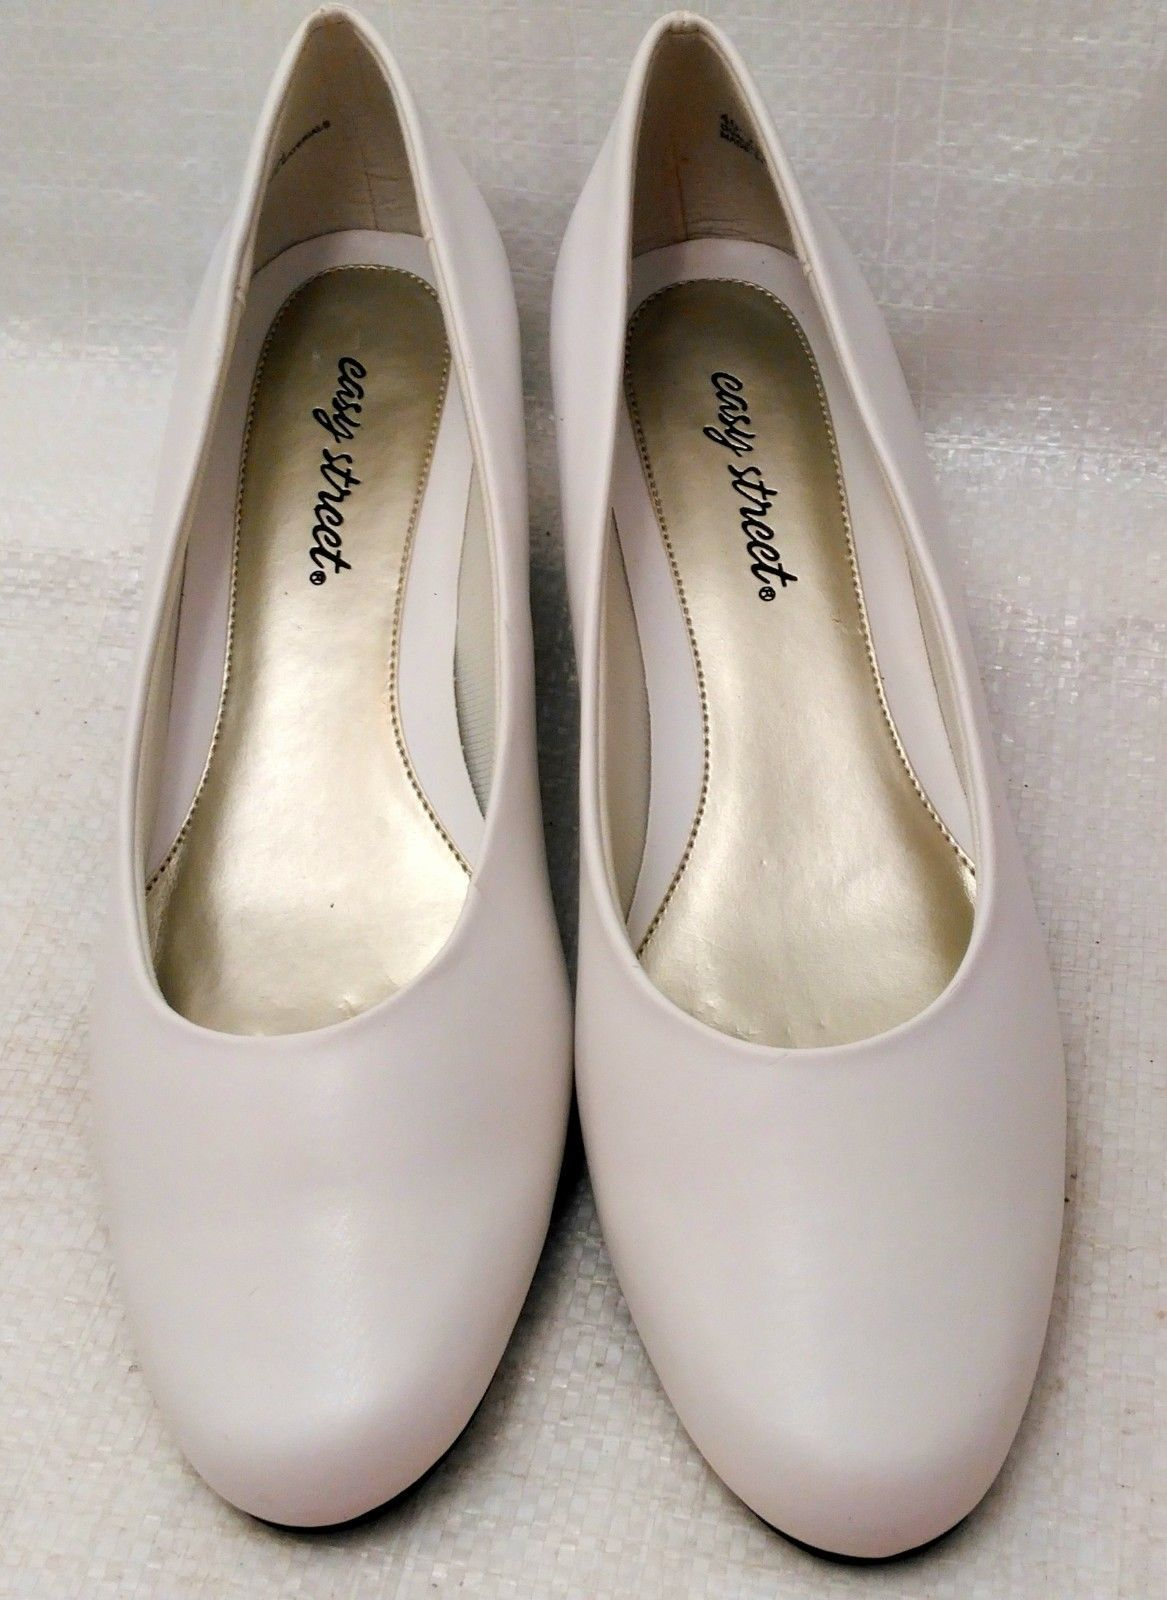 Easy Street Womens Closed Toe Classic Pumps, White, Size 10N